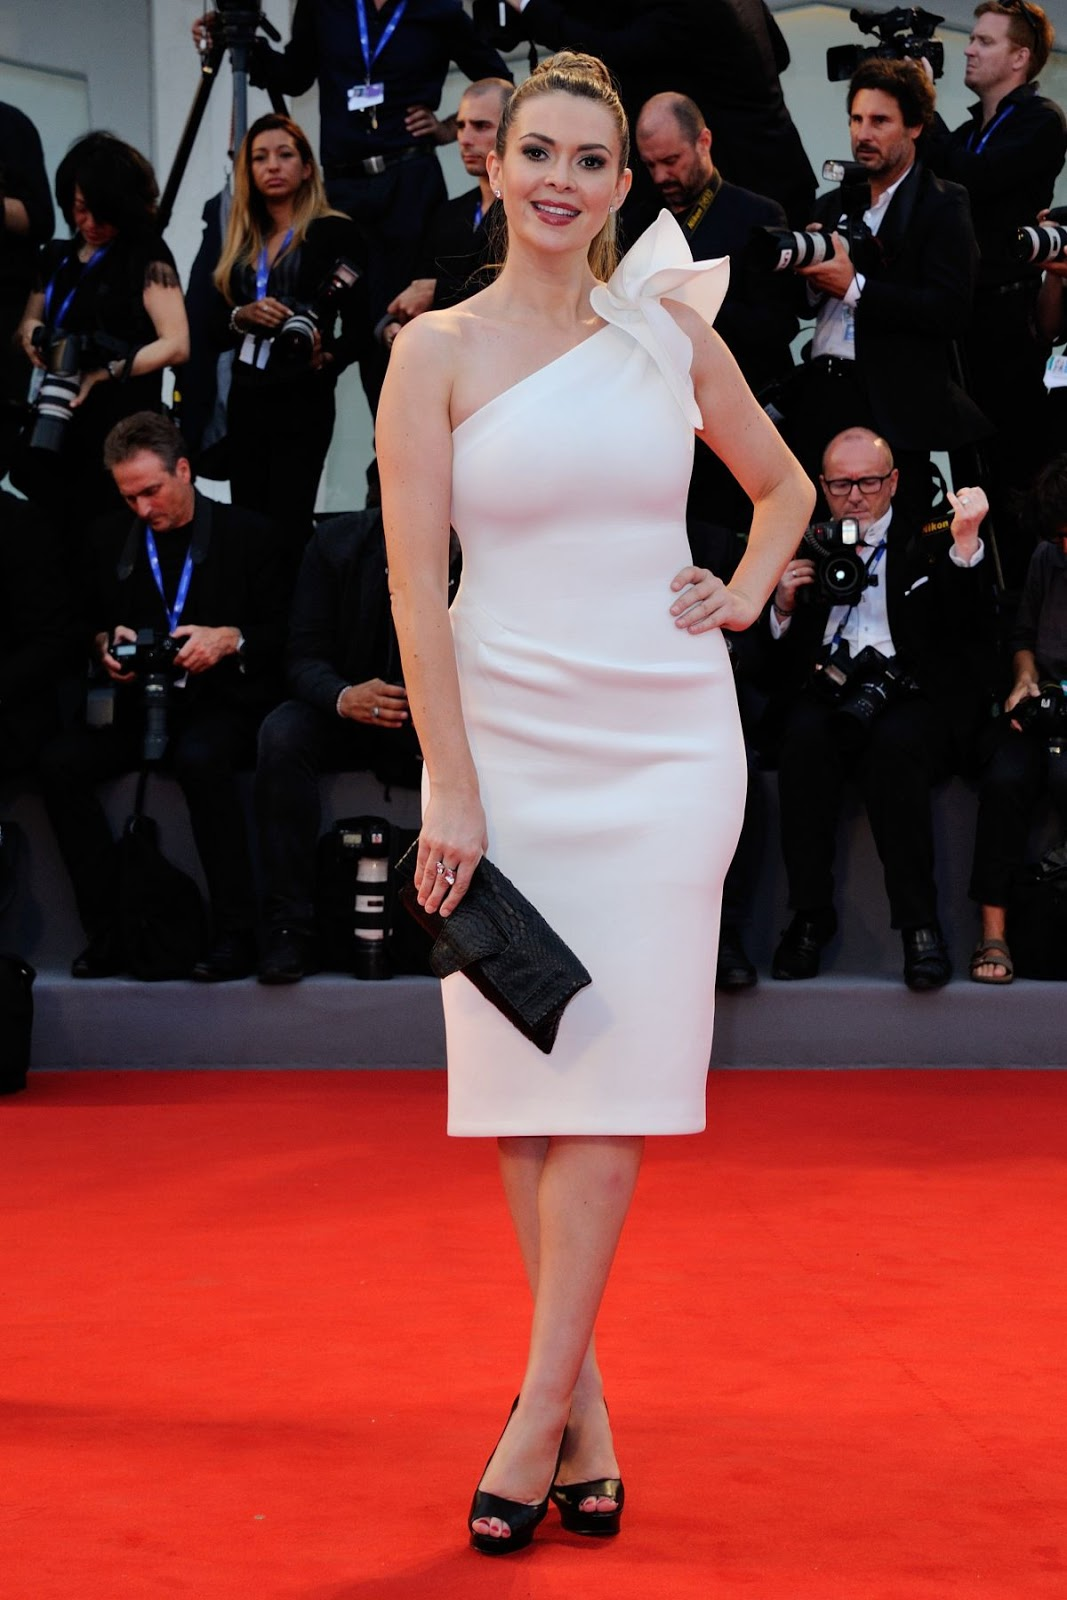 Full HQ Photos of Carly Steel in White Dress At Hacksaw Ridge Premiere At 2016 Venice Film Festival